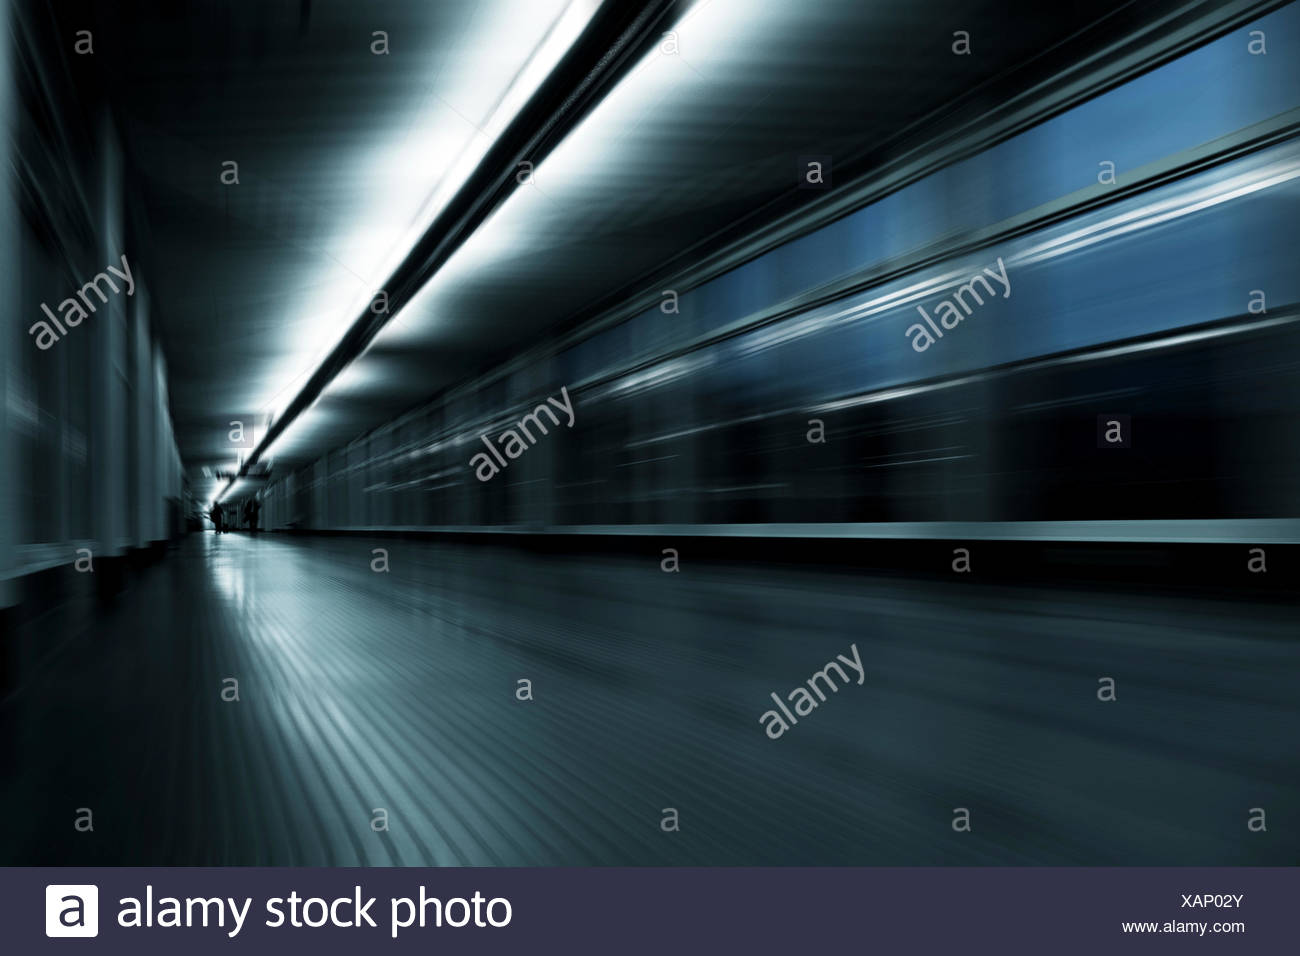 Abstract corridor with motion blur. - Stock Image